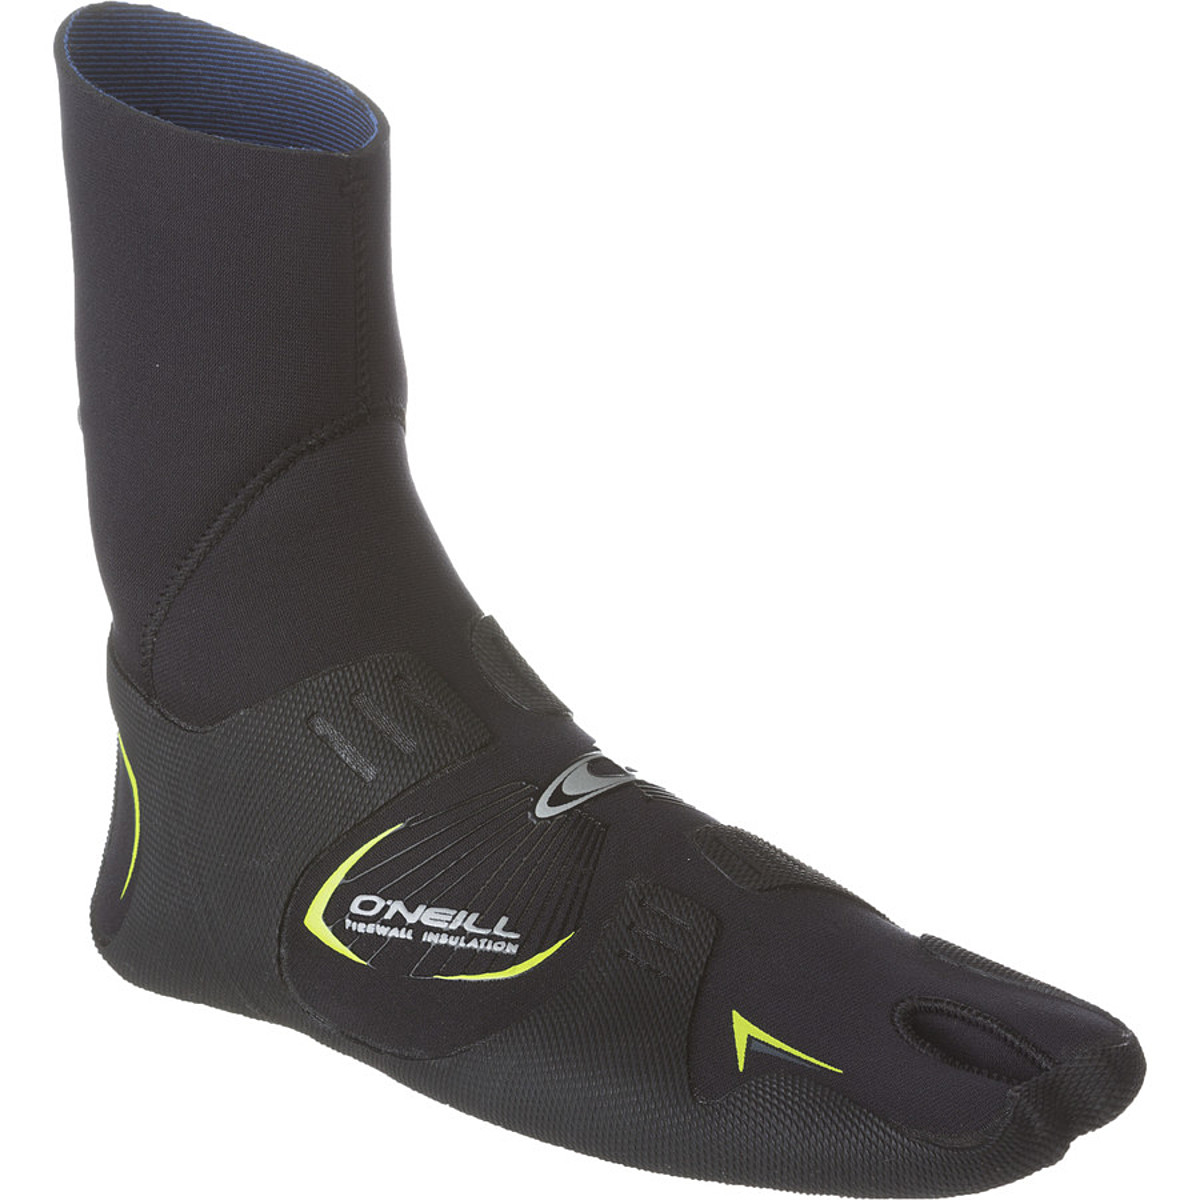 photo of a O'Neill footwear product